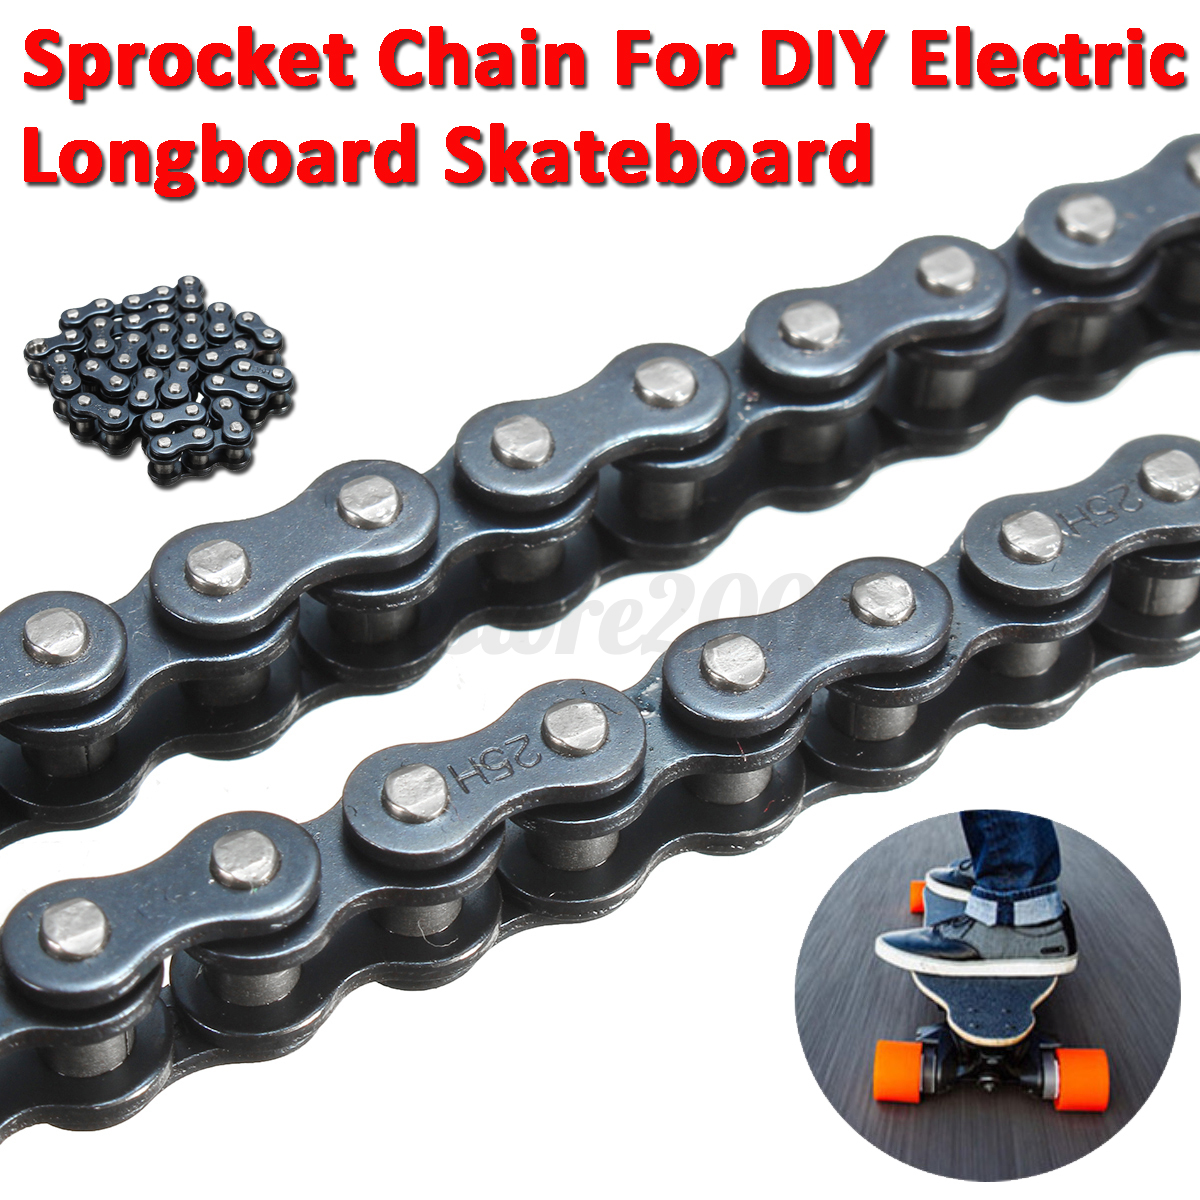 Sprocket Chain For Electric Longboard 8044 Skateboard DIY Replacement Parts New  eBay